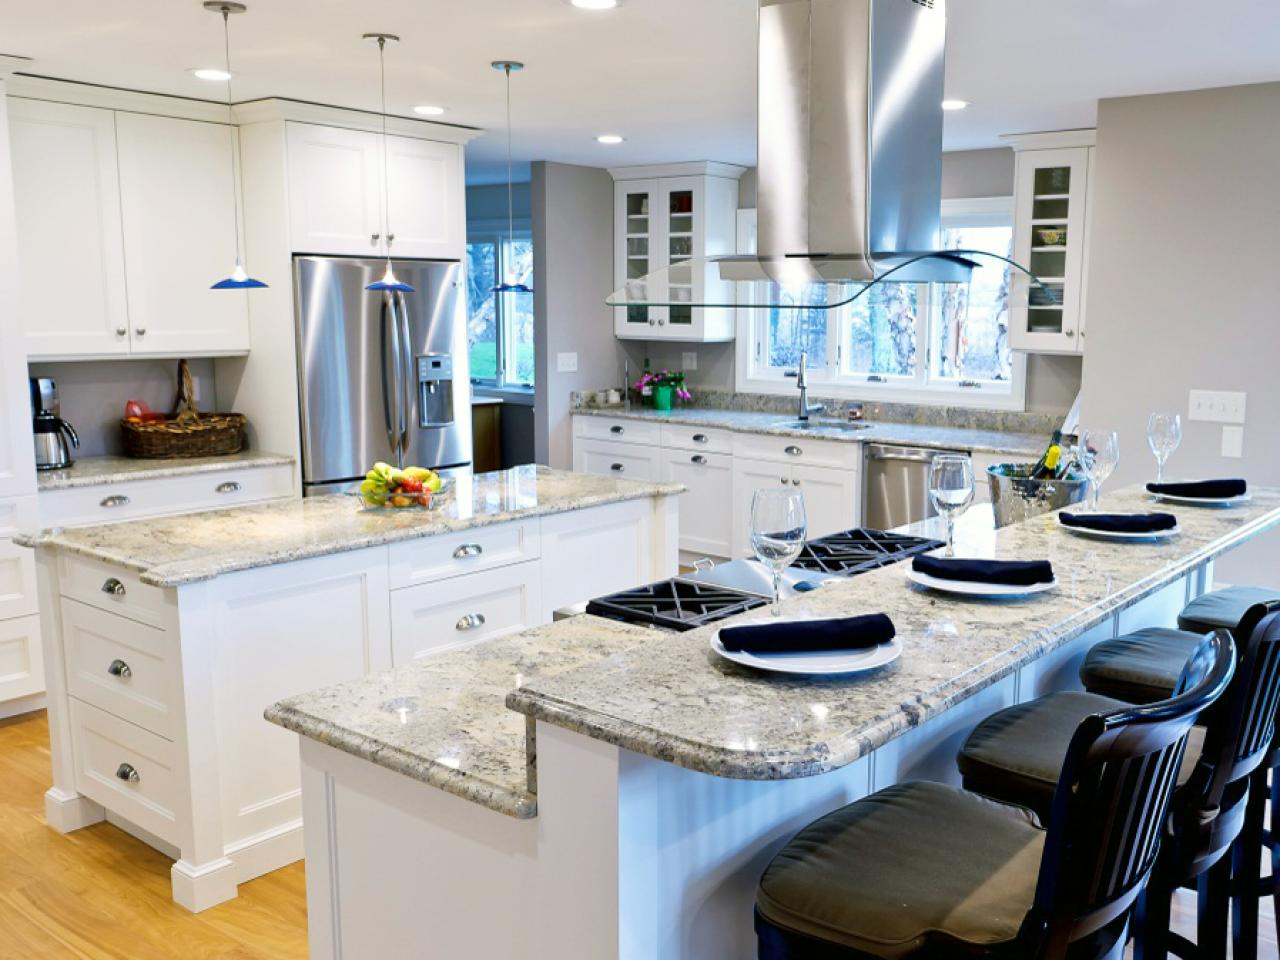 kitchen styles 2017 remodel gray can be the new white wondering what colour to paint your cabinets the kitchen industrys leading producers say that while white cupboards continue best kitchen styles decoration and art center